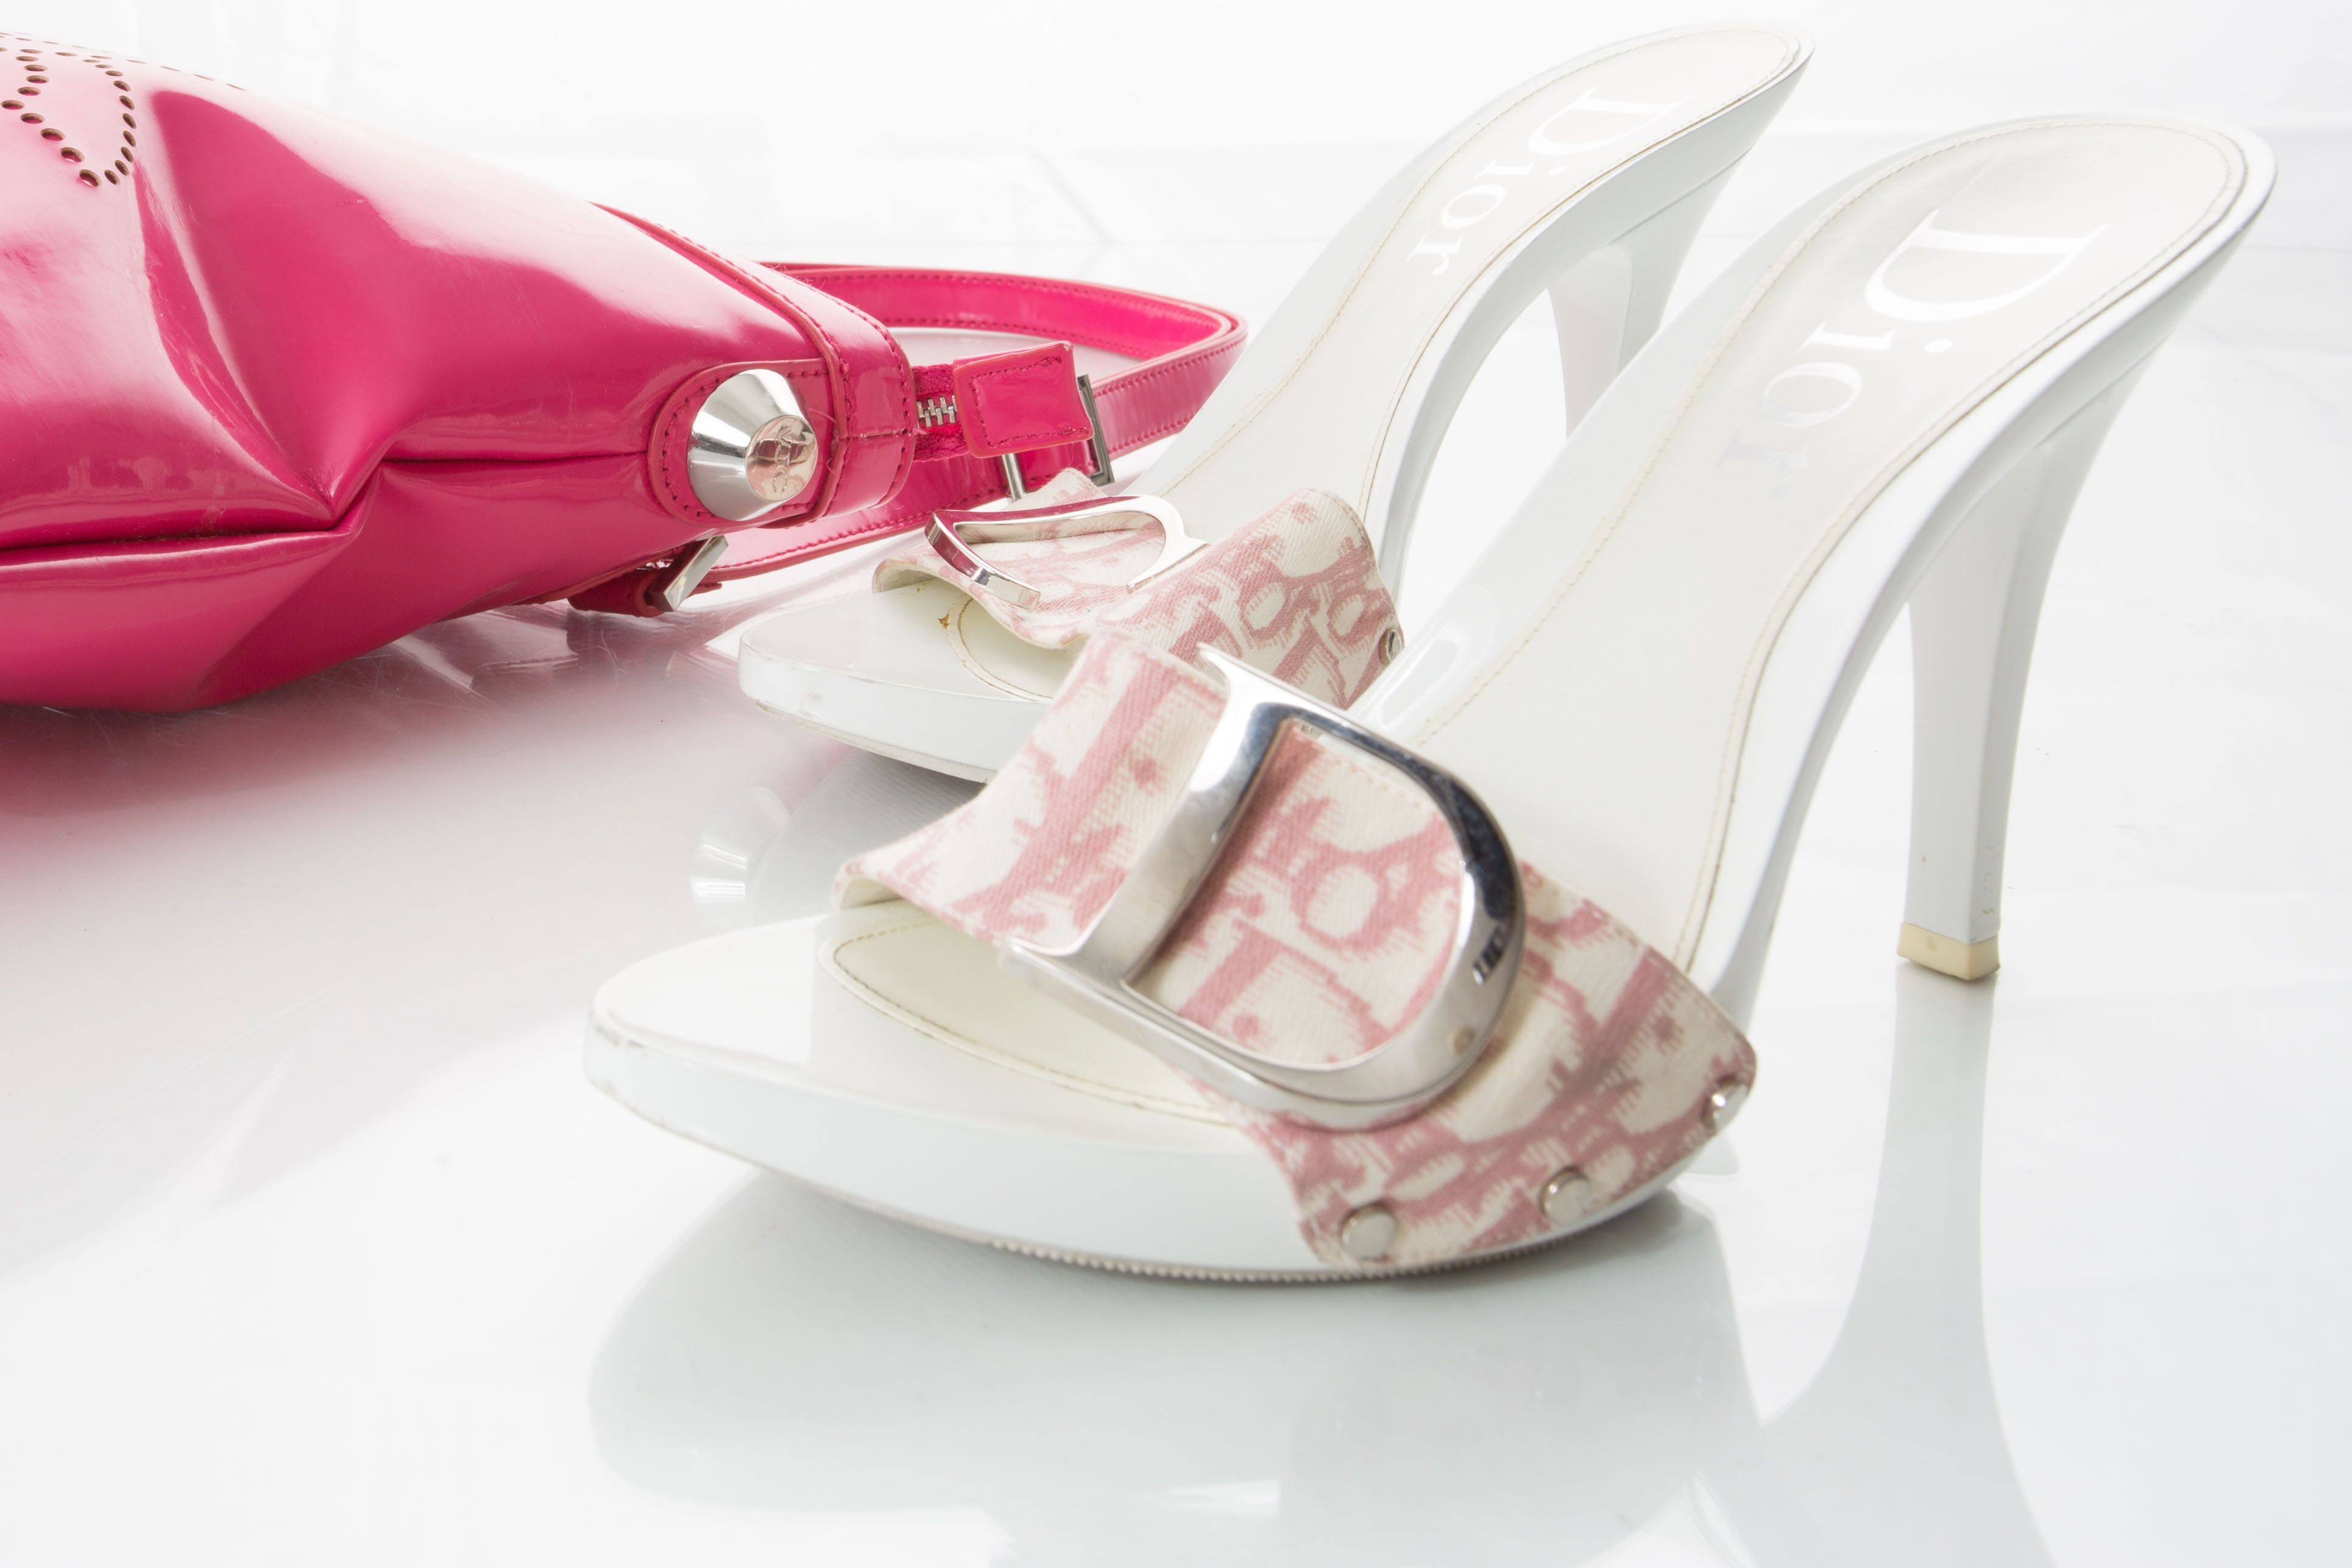 christian-dior-sandal-christian-white-sandals-mules-size-8-monogram-pink